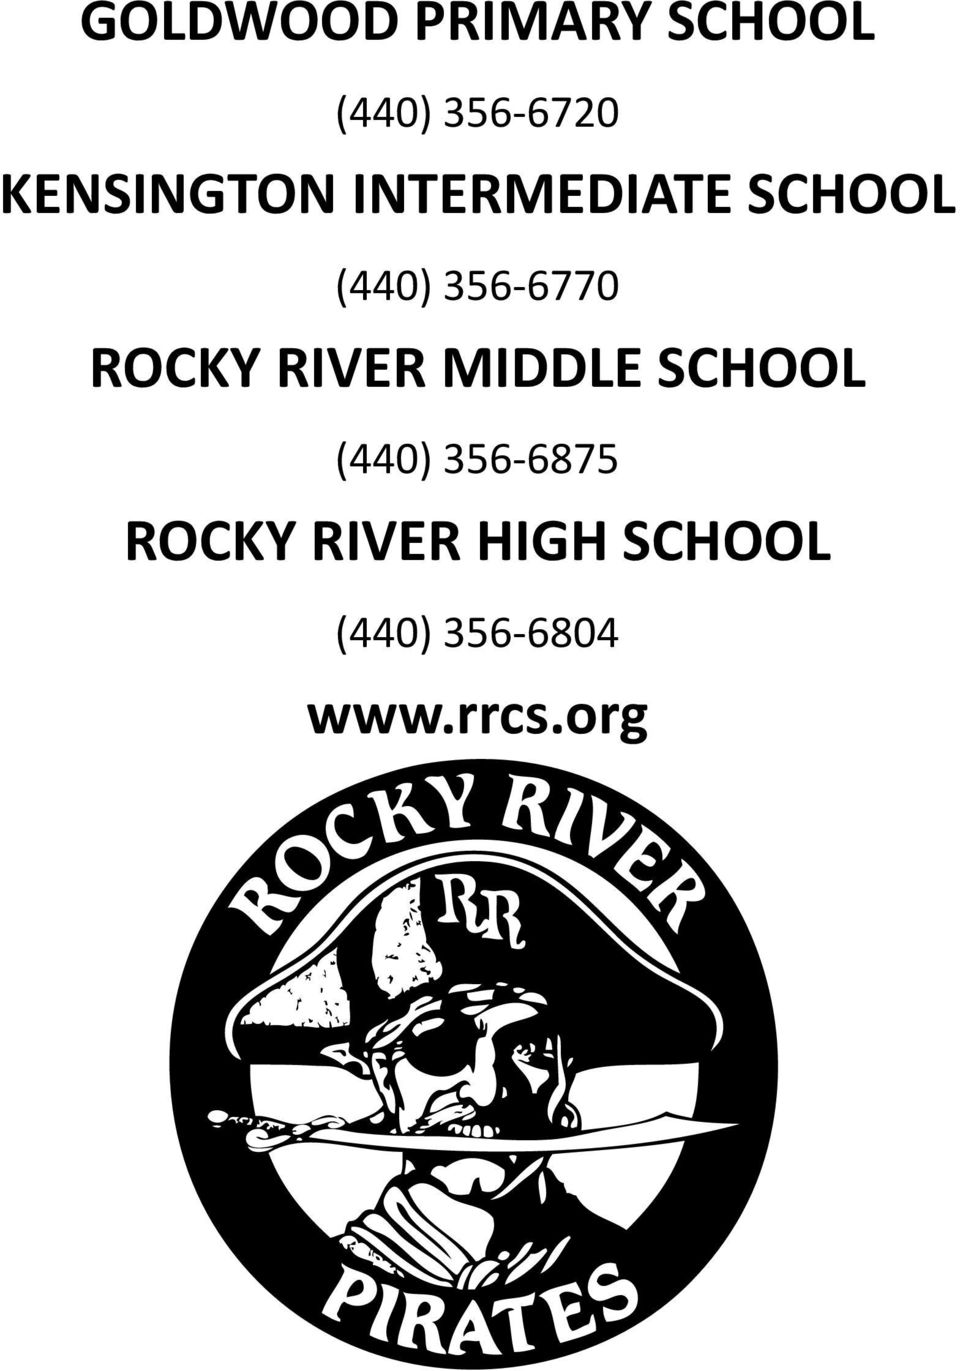 356-6770 ROCKY RIVER MIDDLE SCHOOL (440)